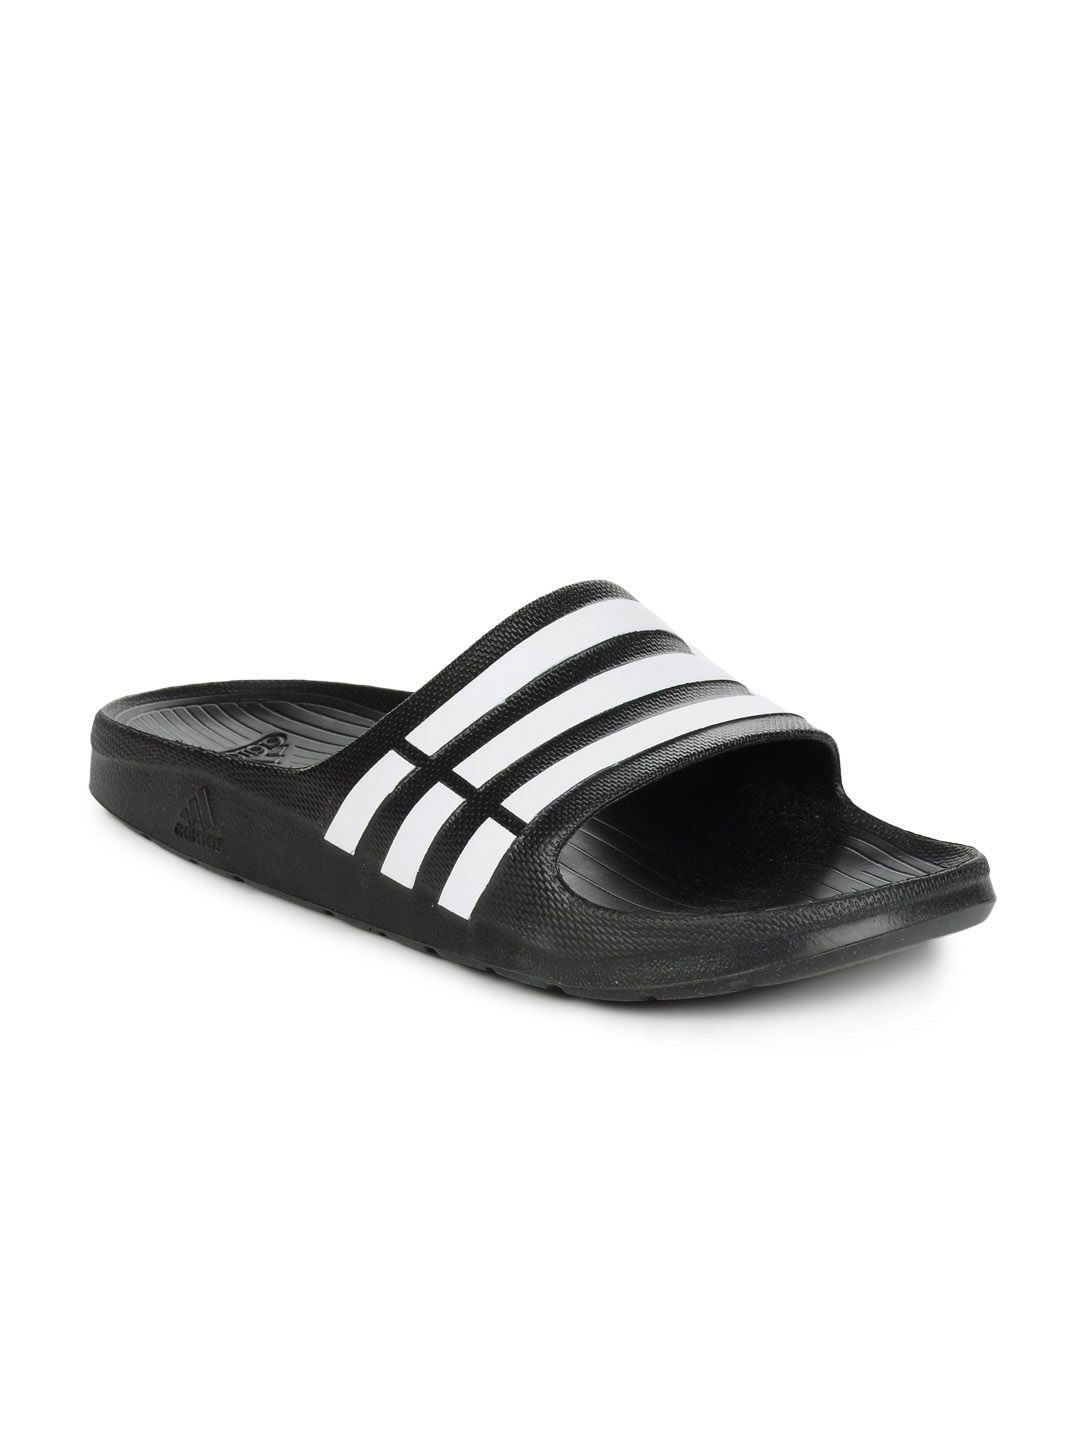 e58e50b95 Adidas Duramo Slide Flip Flops Black Price in India- Buy Adidas Duramo Slide  Flip Flops Black Online at Snapdeal